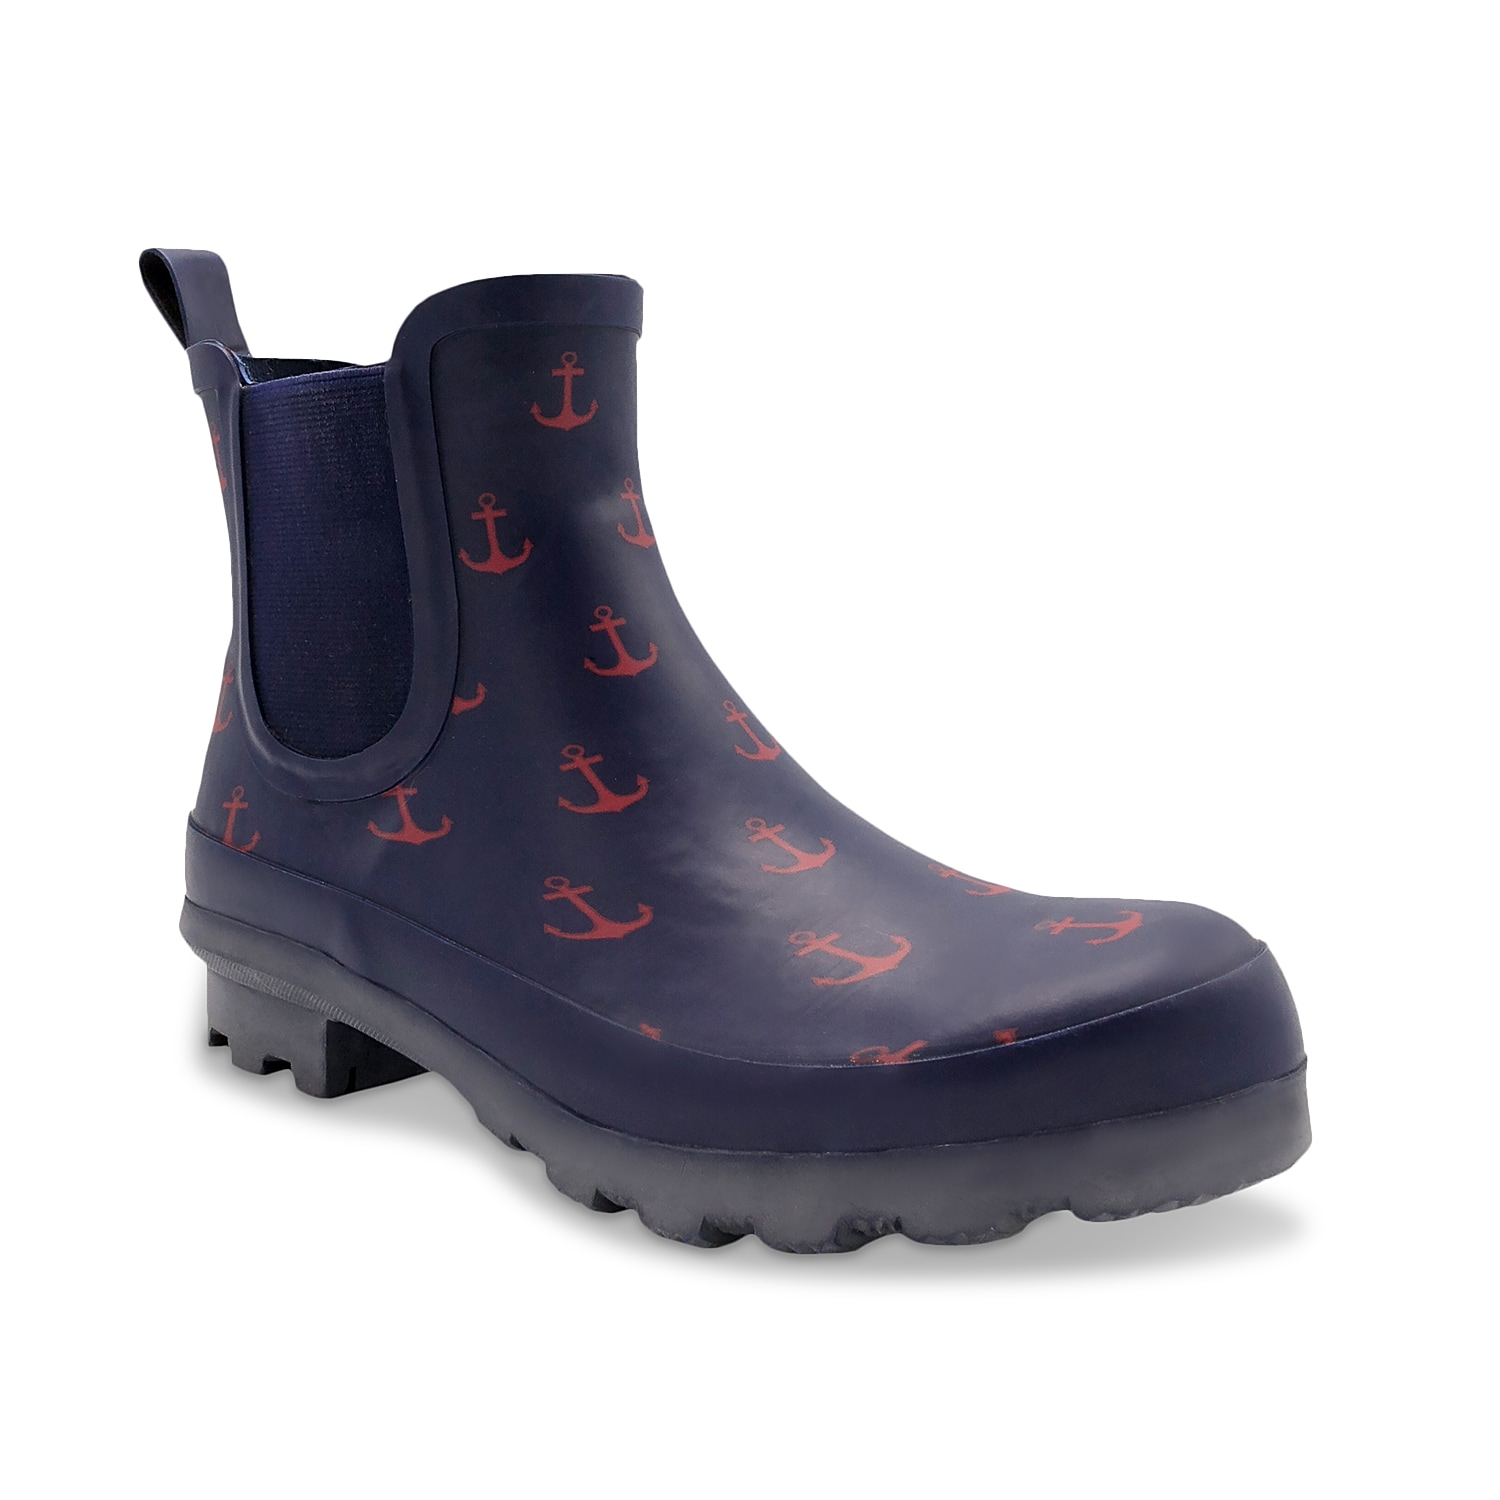 Splash around in the Wembley rain boot from London Fog. This waterproof pair features a memory foam footbed to keep you supported!Click here for Boot Measuring Guide.